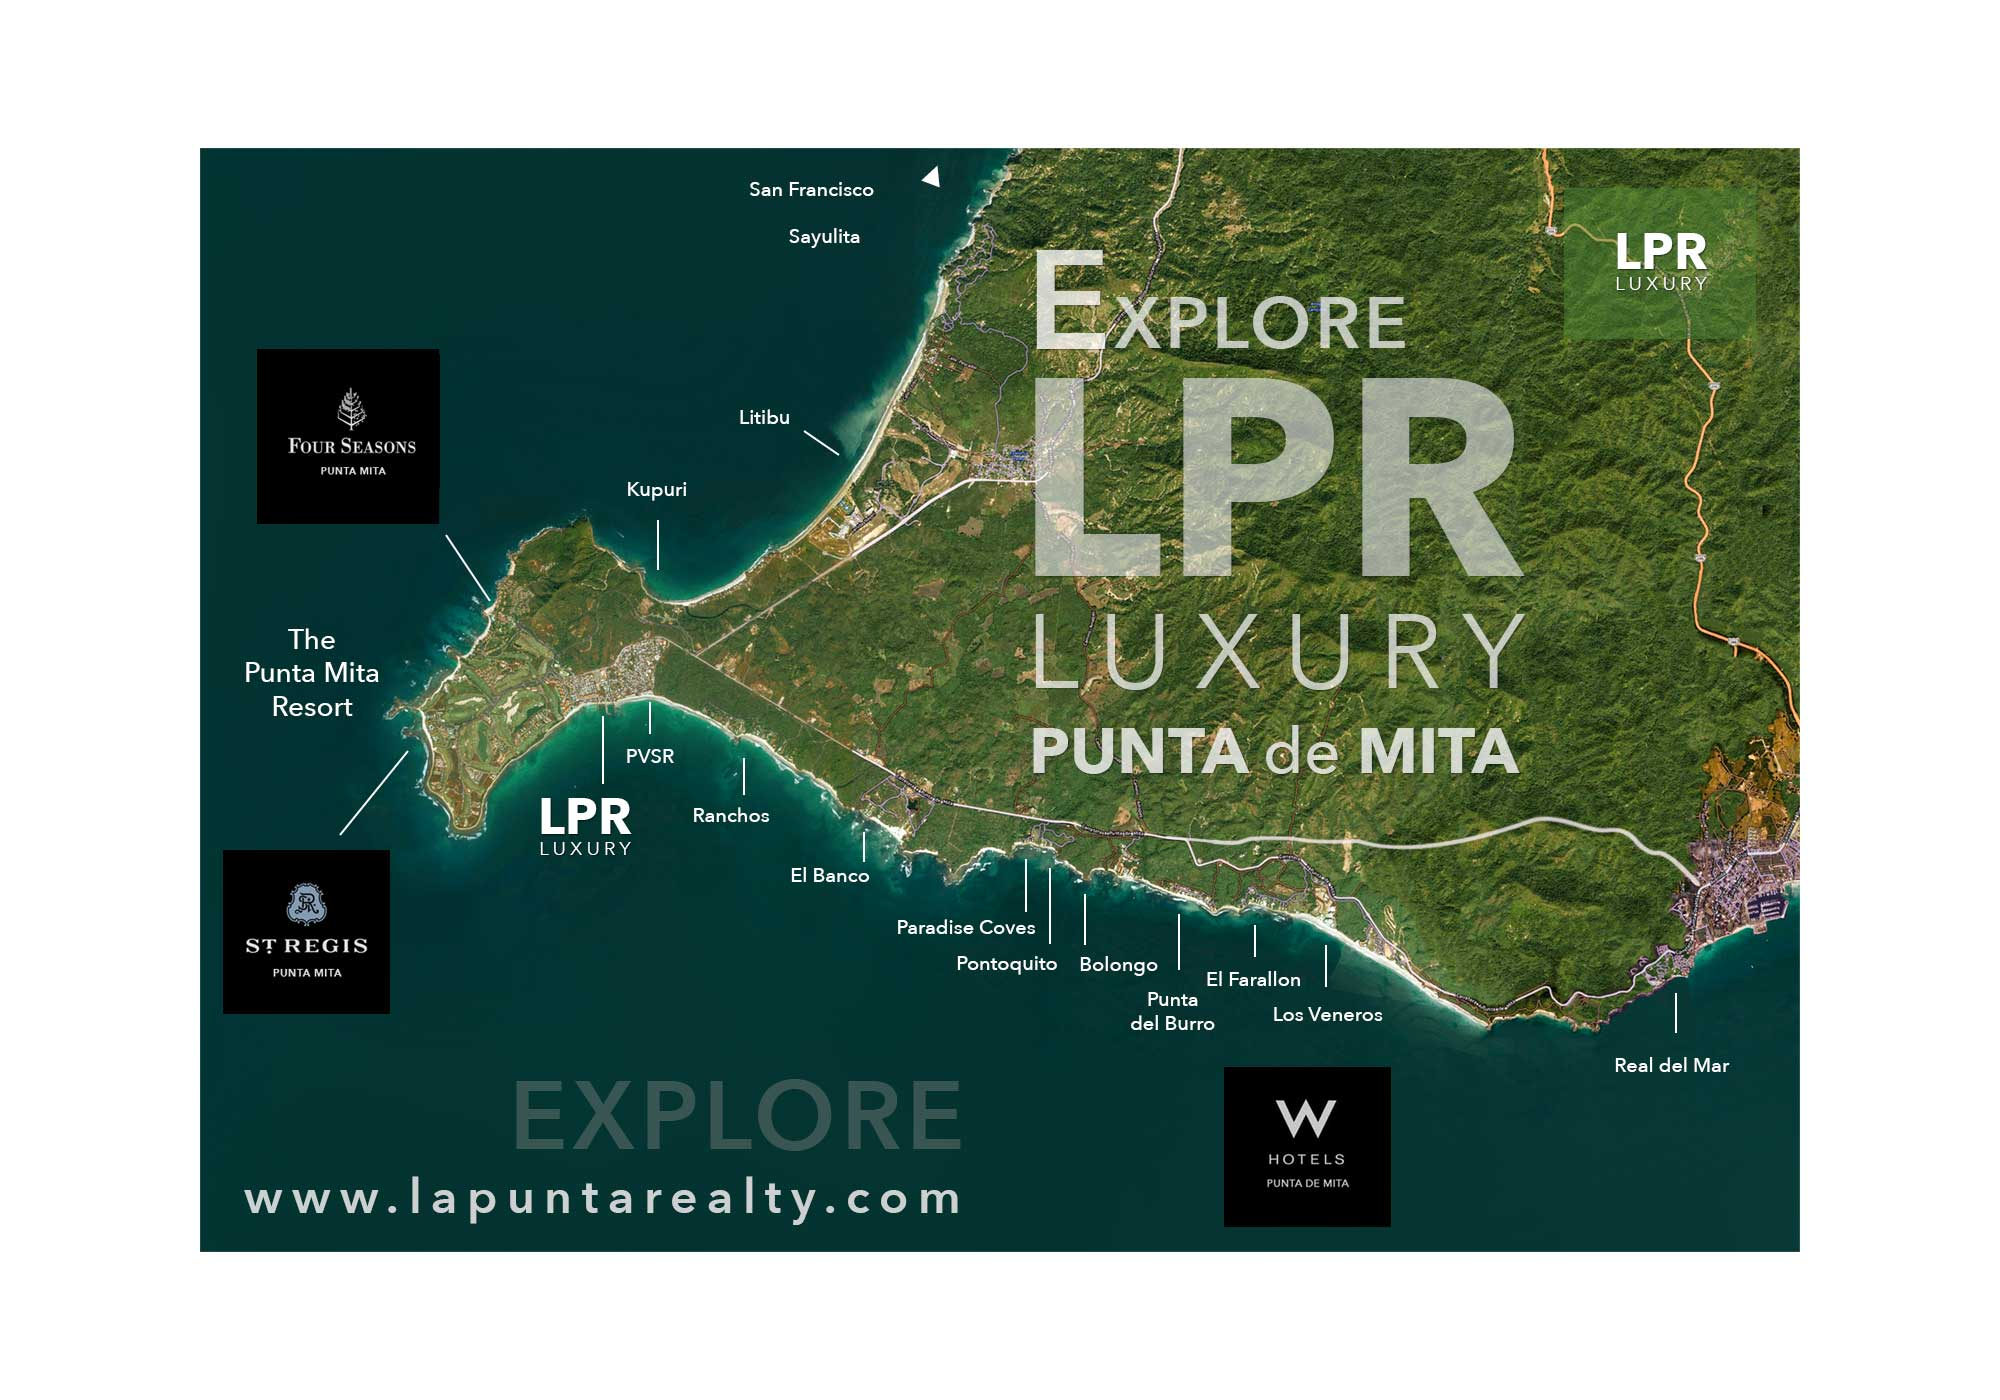 Explore Punta de Mita - Map of Punta de Mita Luxury Real Estate